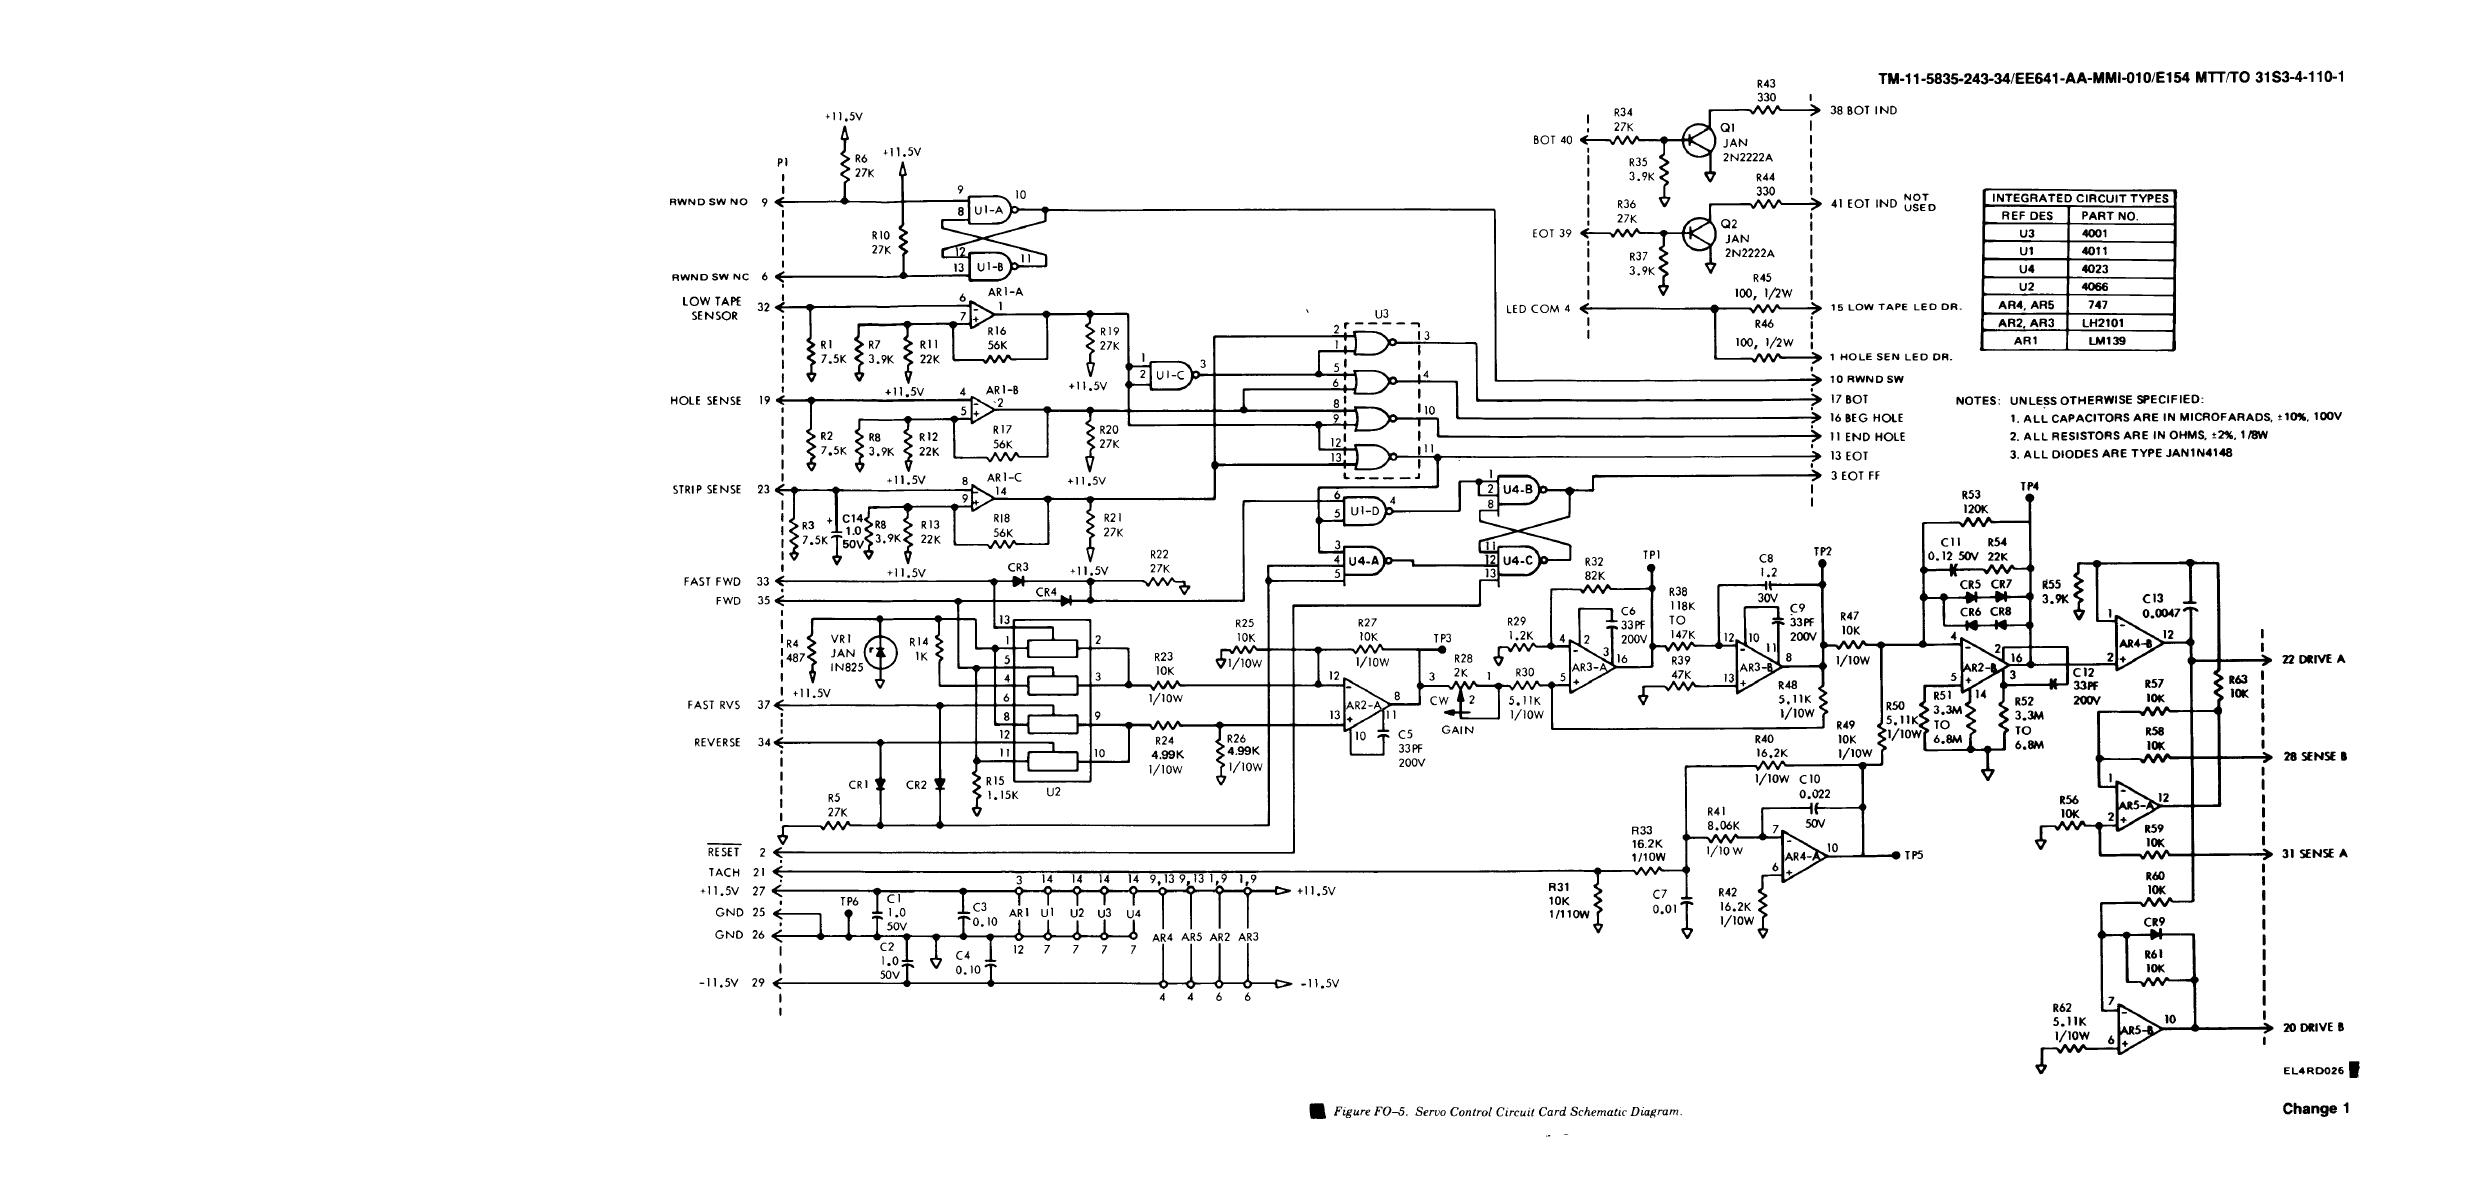 Playstation 3 Controller Wiring Diagram